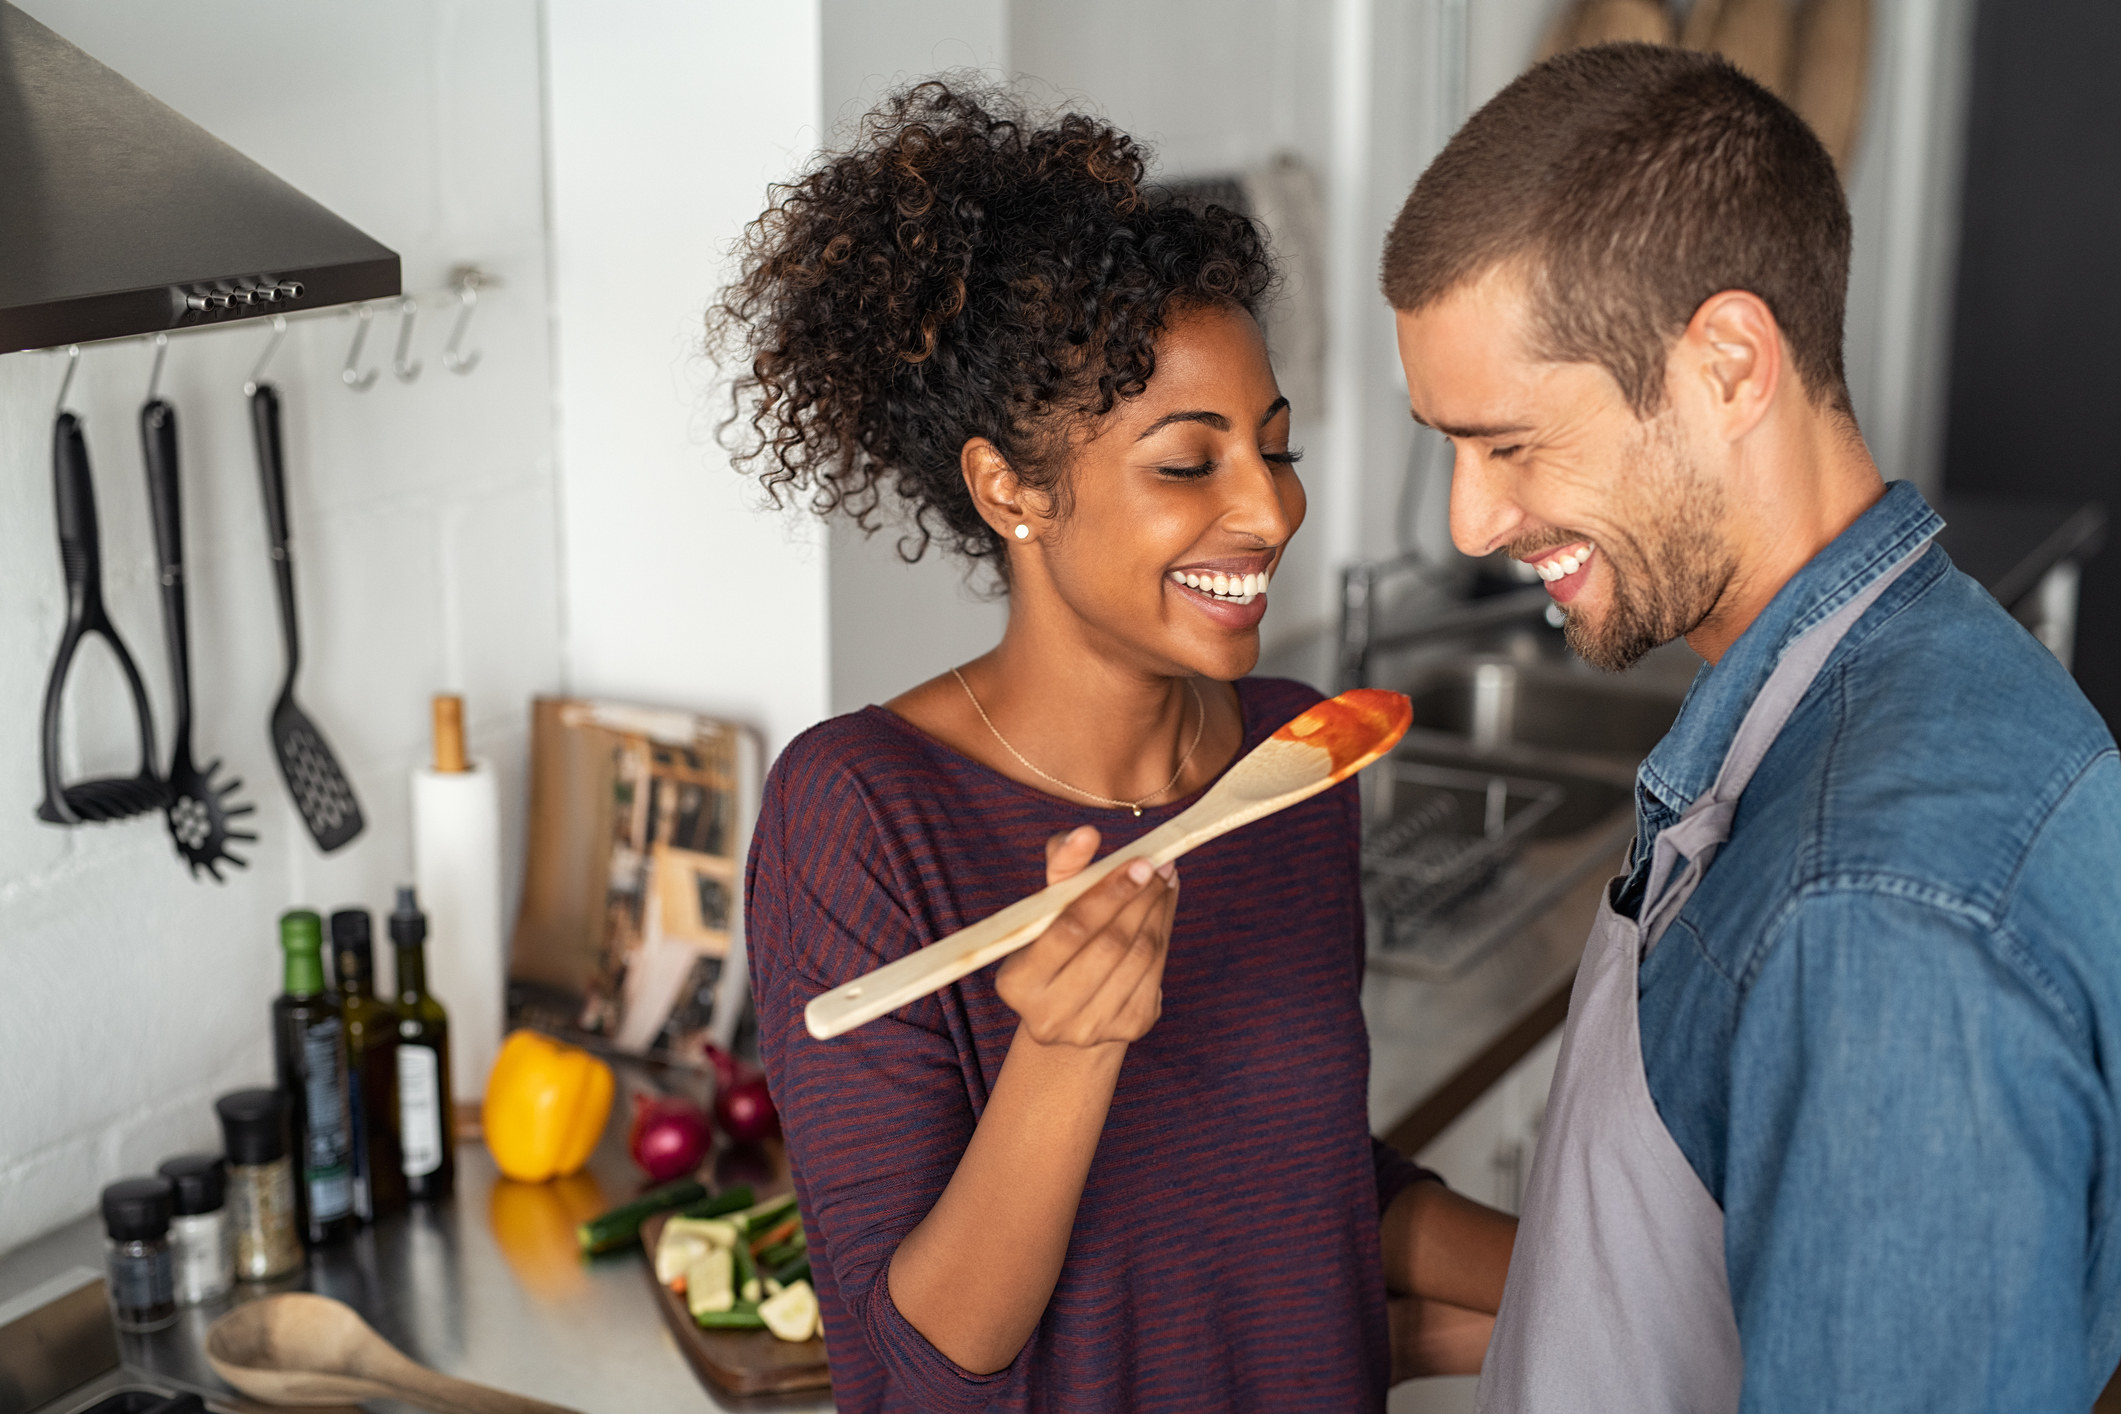 Girlfriend having her boyfriend try some pasta sauce from a wooden spoon